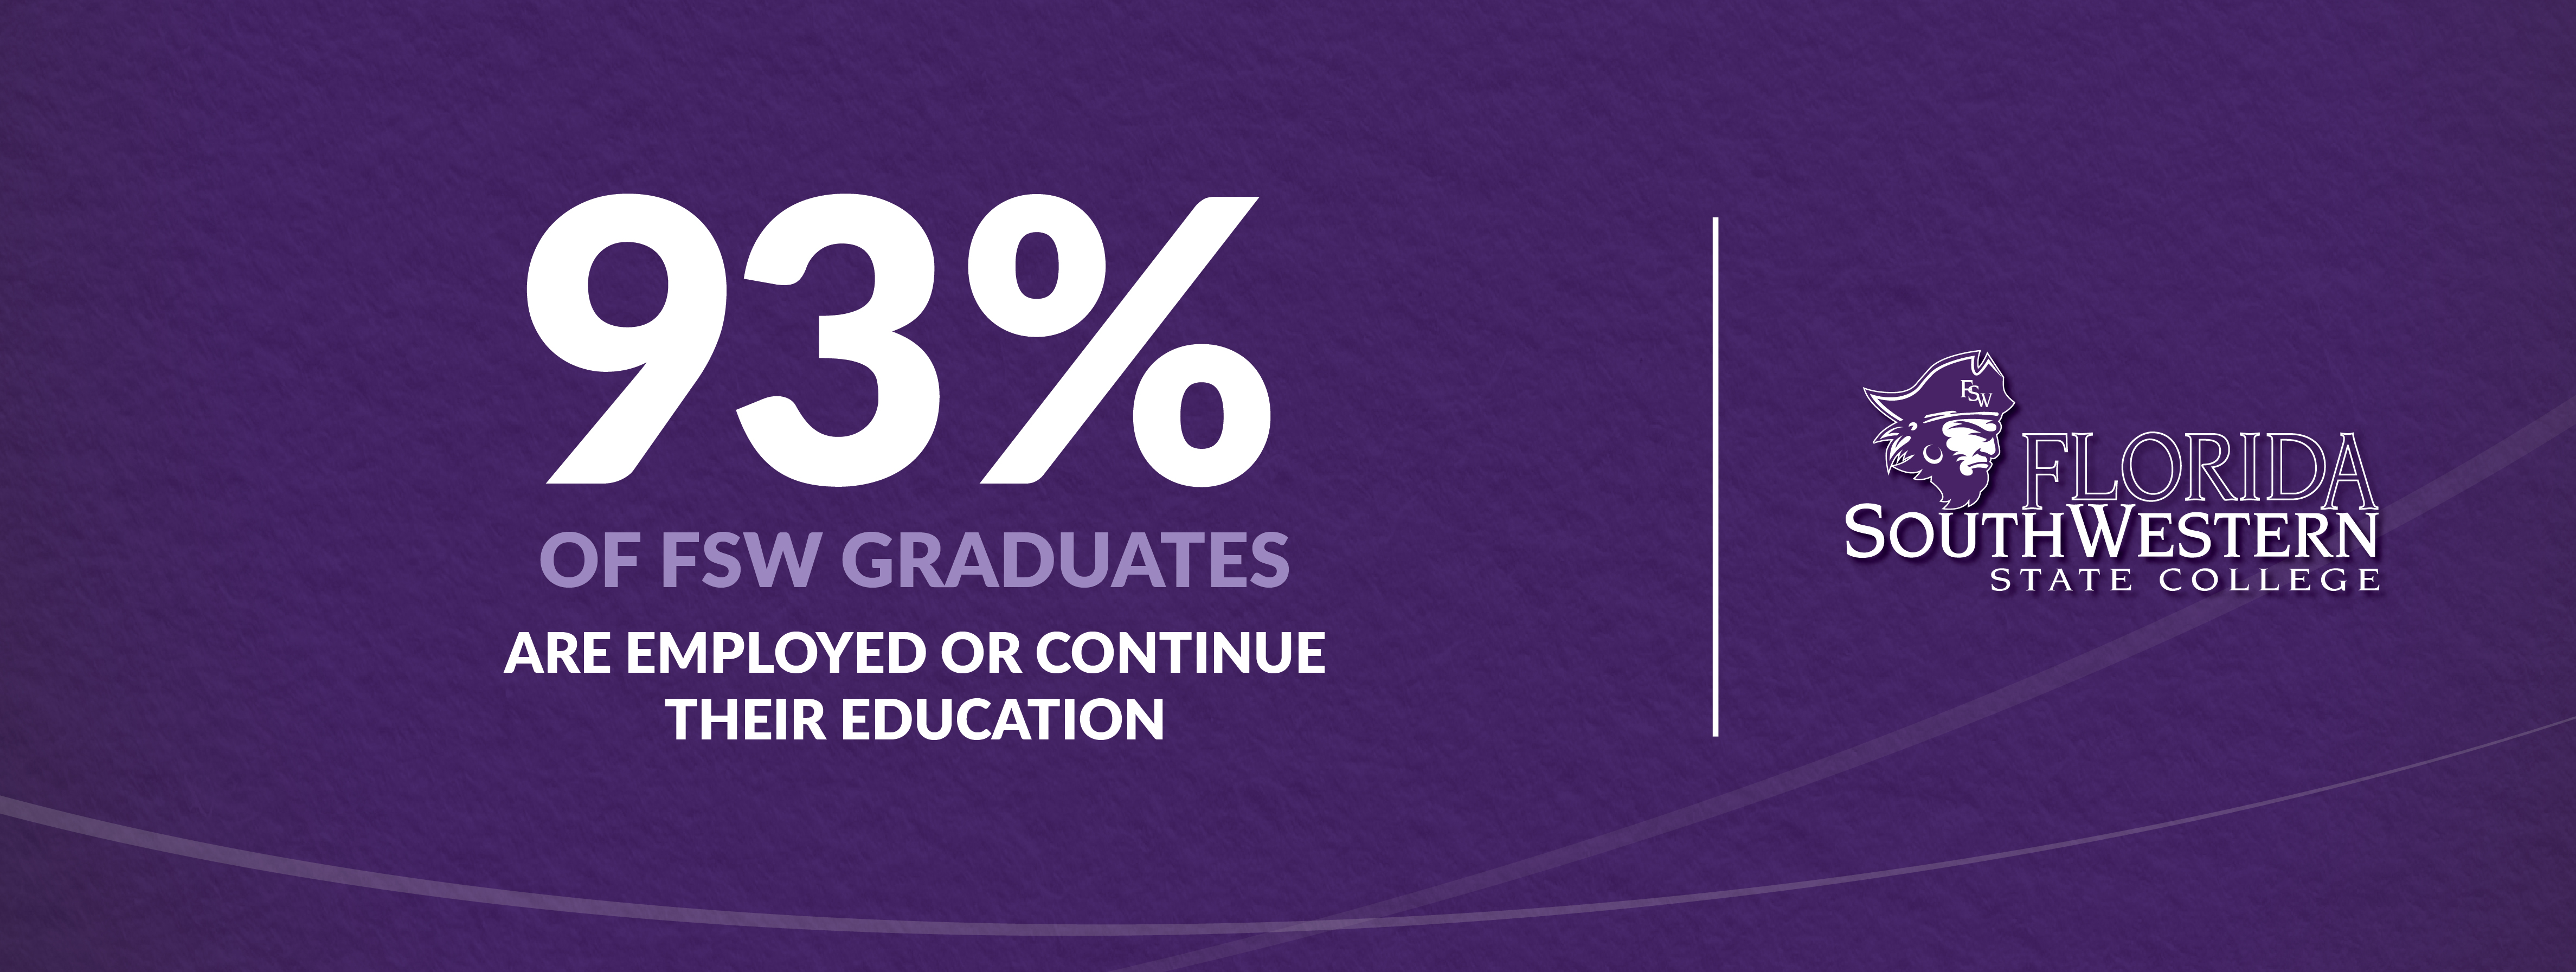 93 percent of FSW graduates are employed or continue their education.